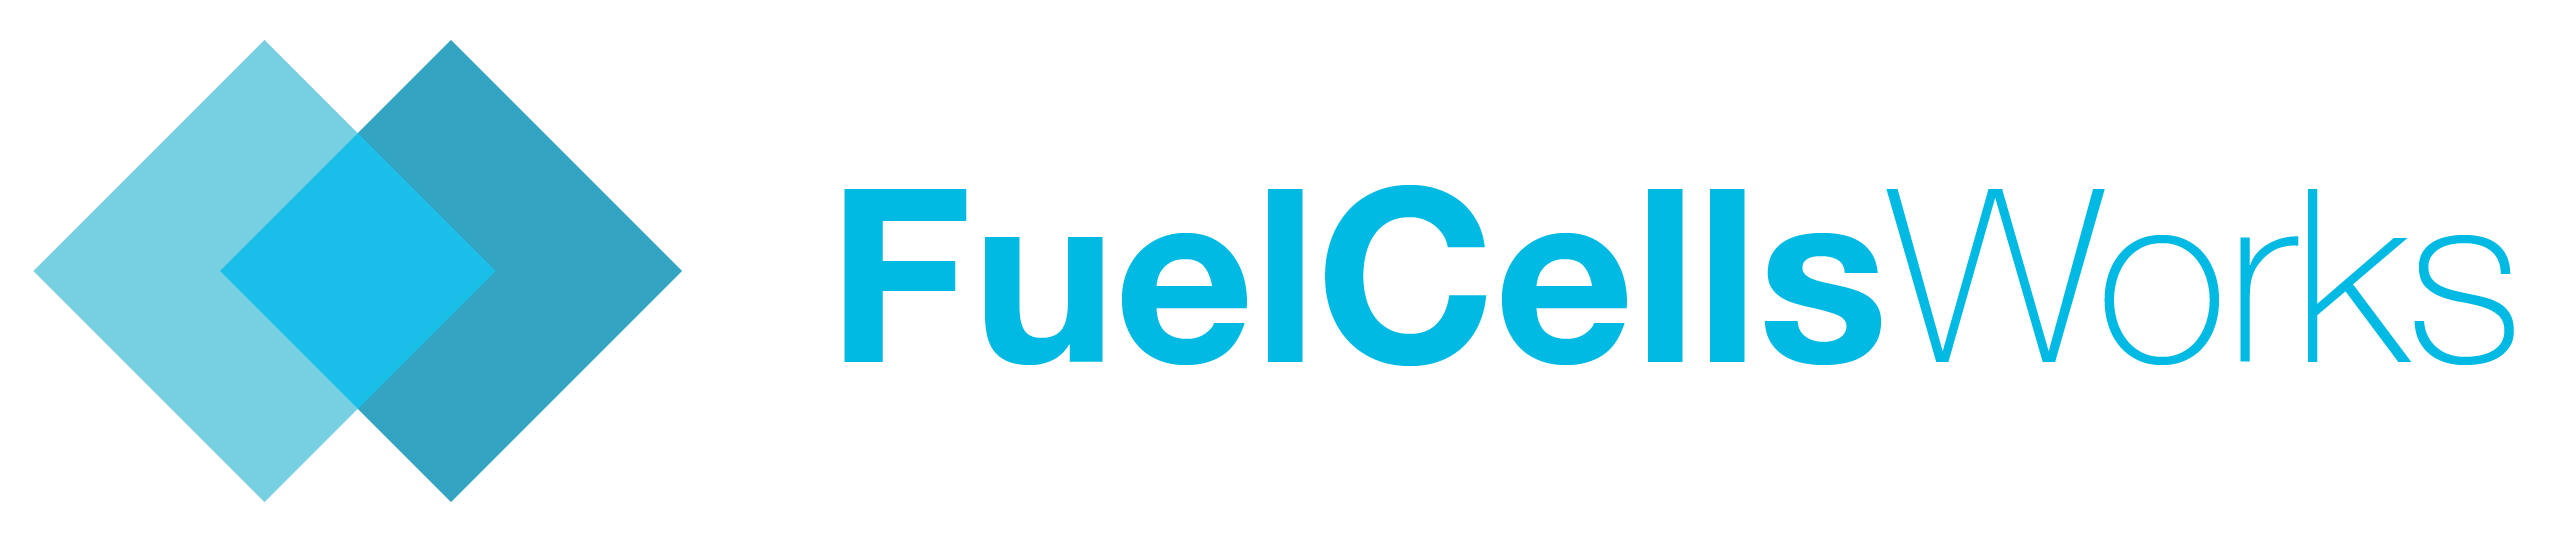 Fuel Cell Works Logo 01